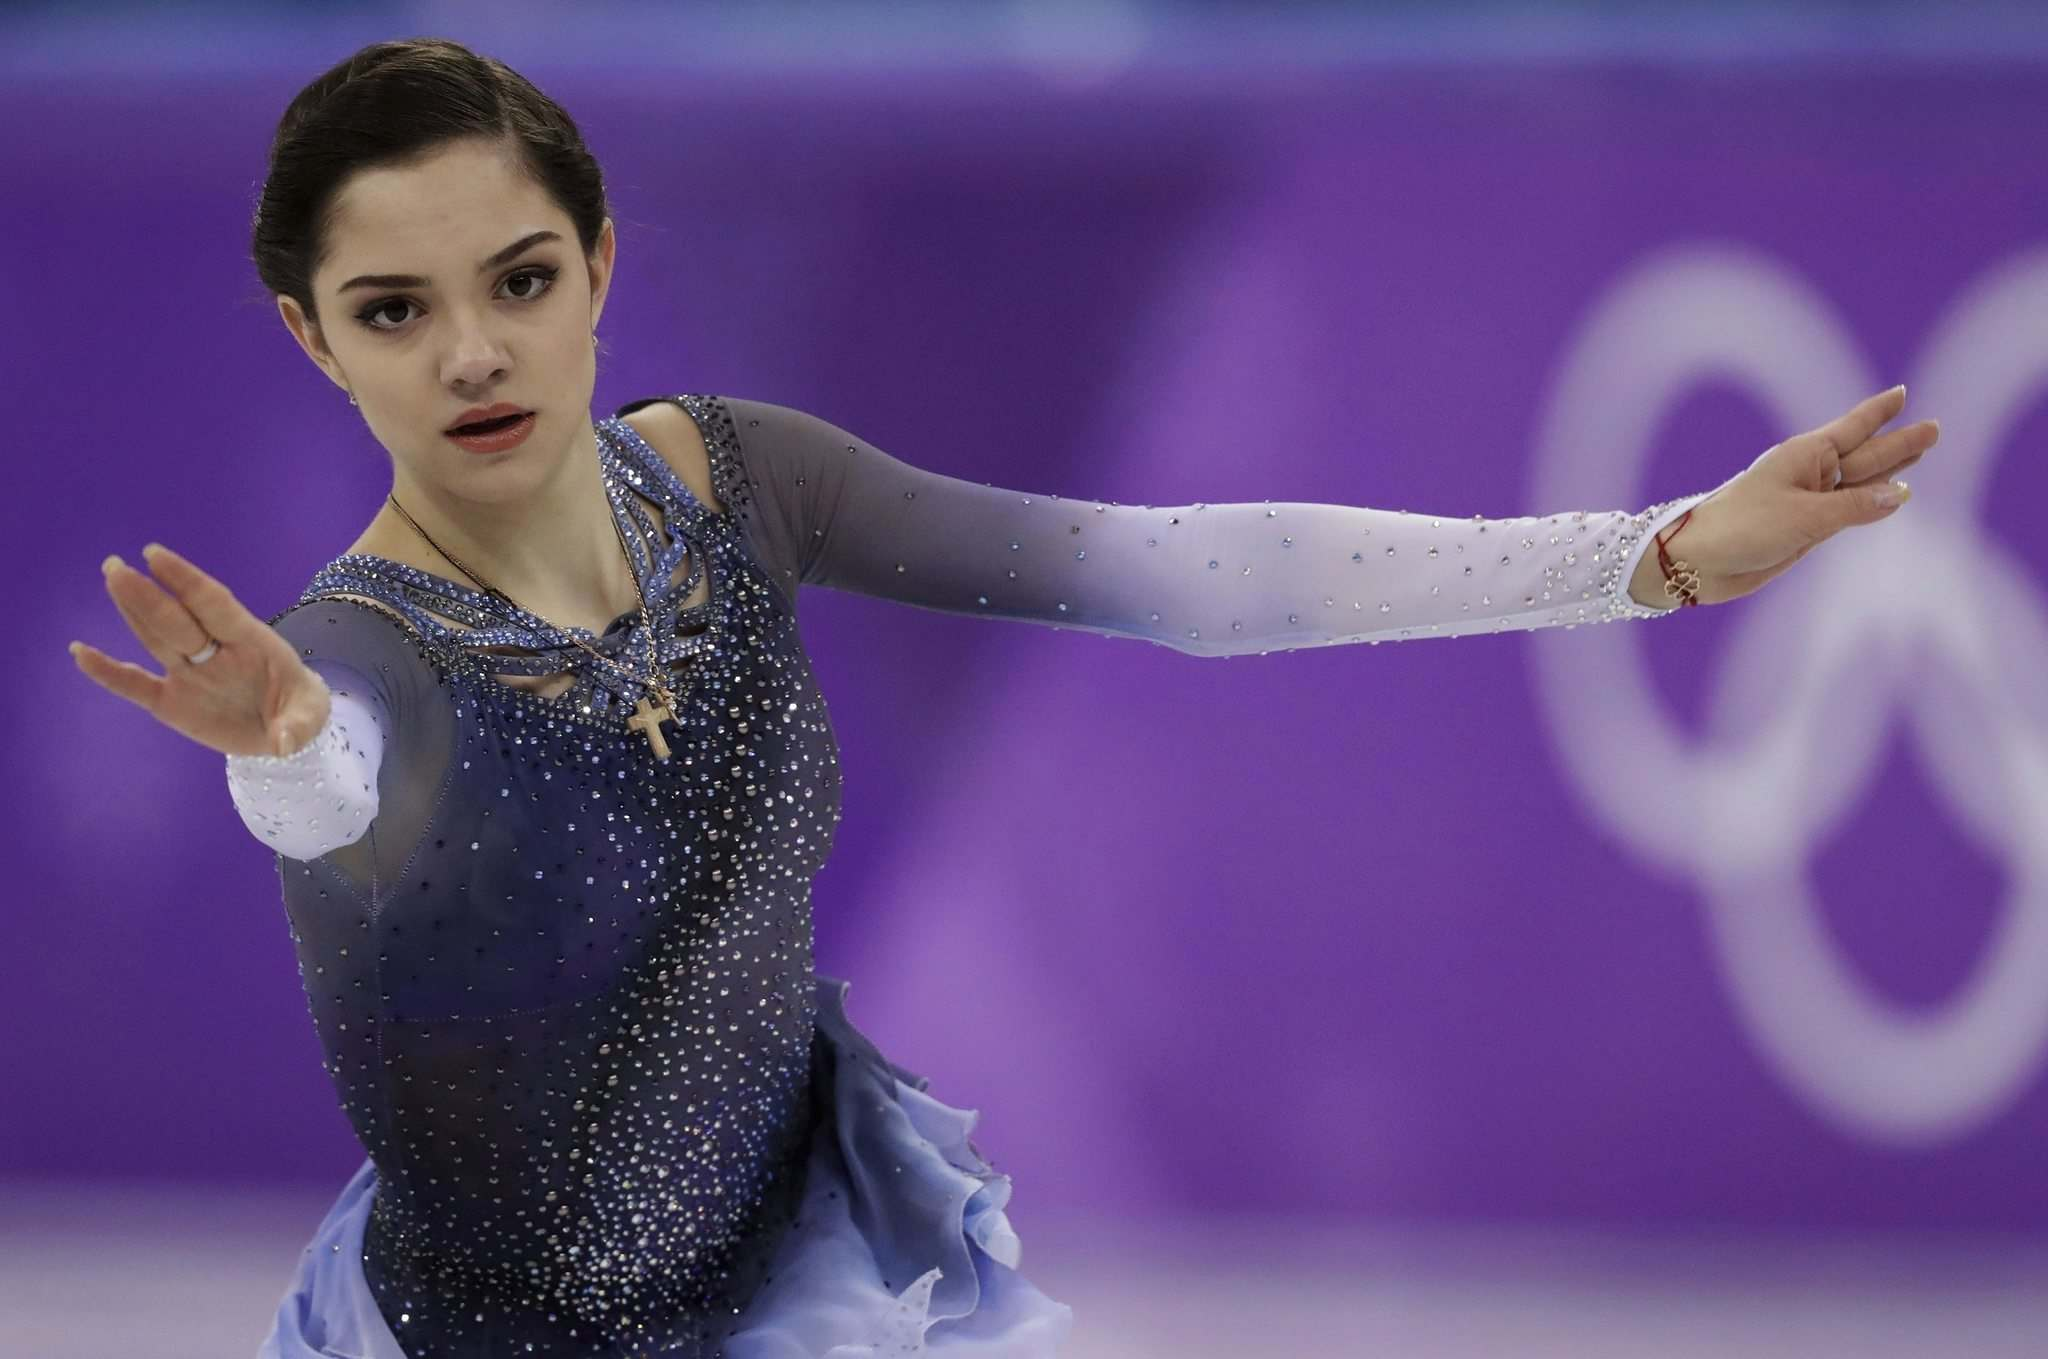 Bernat Armangue / The Associated Press files</p><p>Russian skating star Evgenia Medvedeva, performing at the Winter Olympics in South Korea in 2018, made figure-skating history at 16 when she became the first woman to win the world junior and senior championship crowns back-to-back.</p></p>